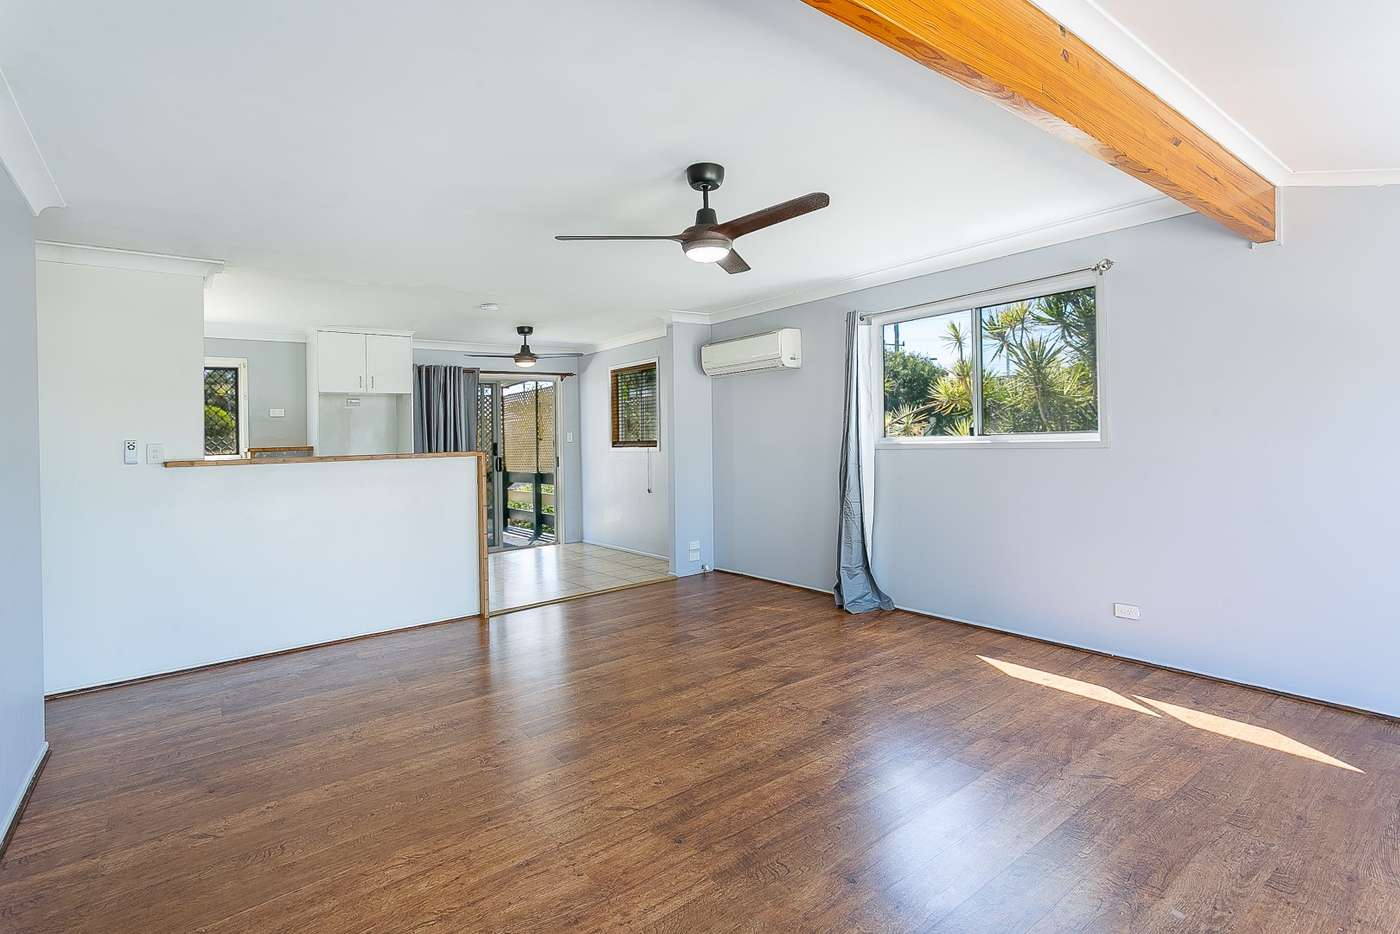 Fifth view of Homely house listing, 1 Madden Street, Silkstone QLD 4304